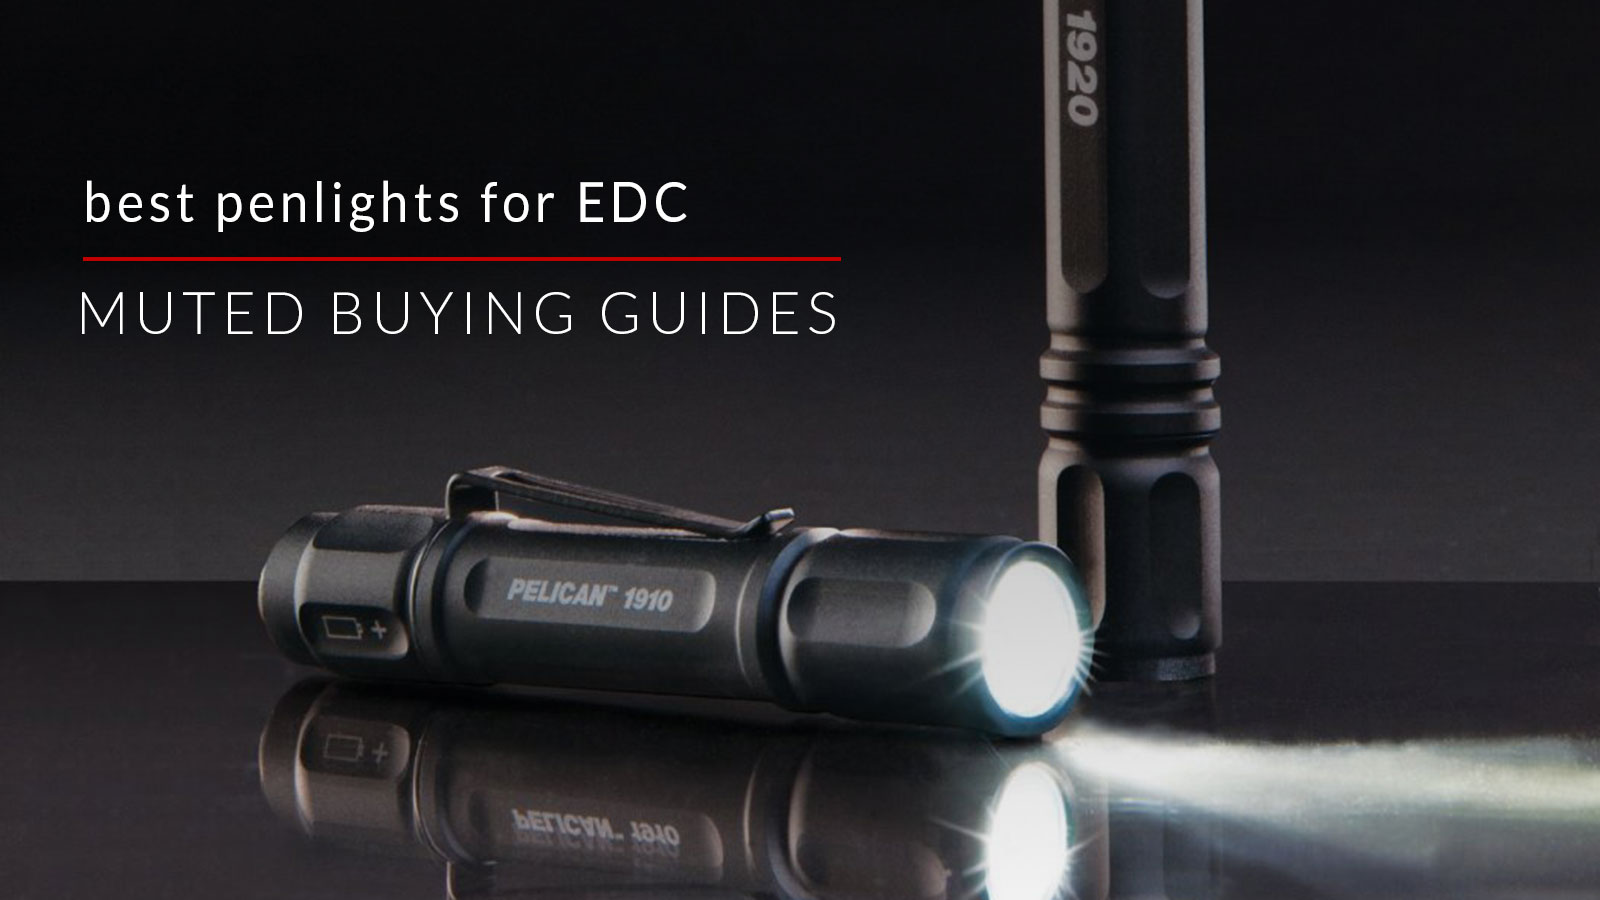 best penlights for edc